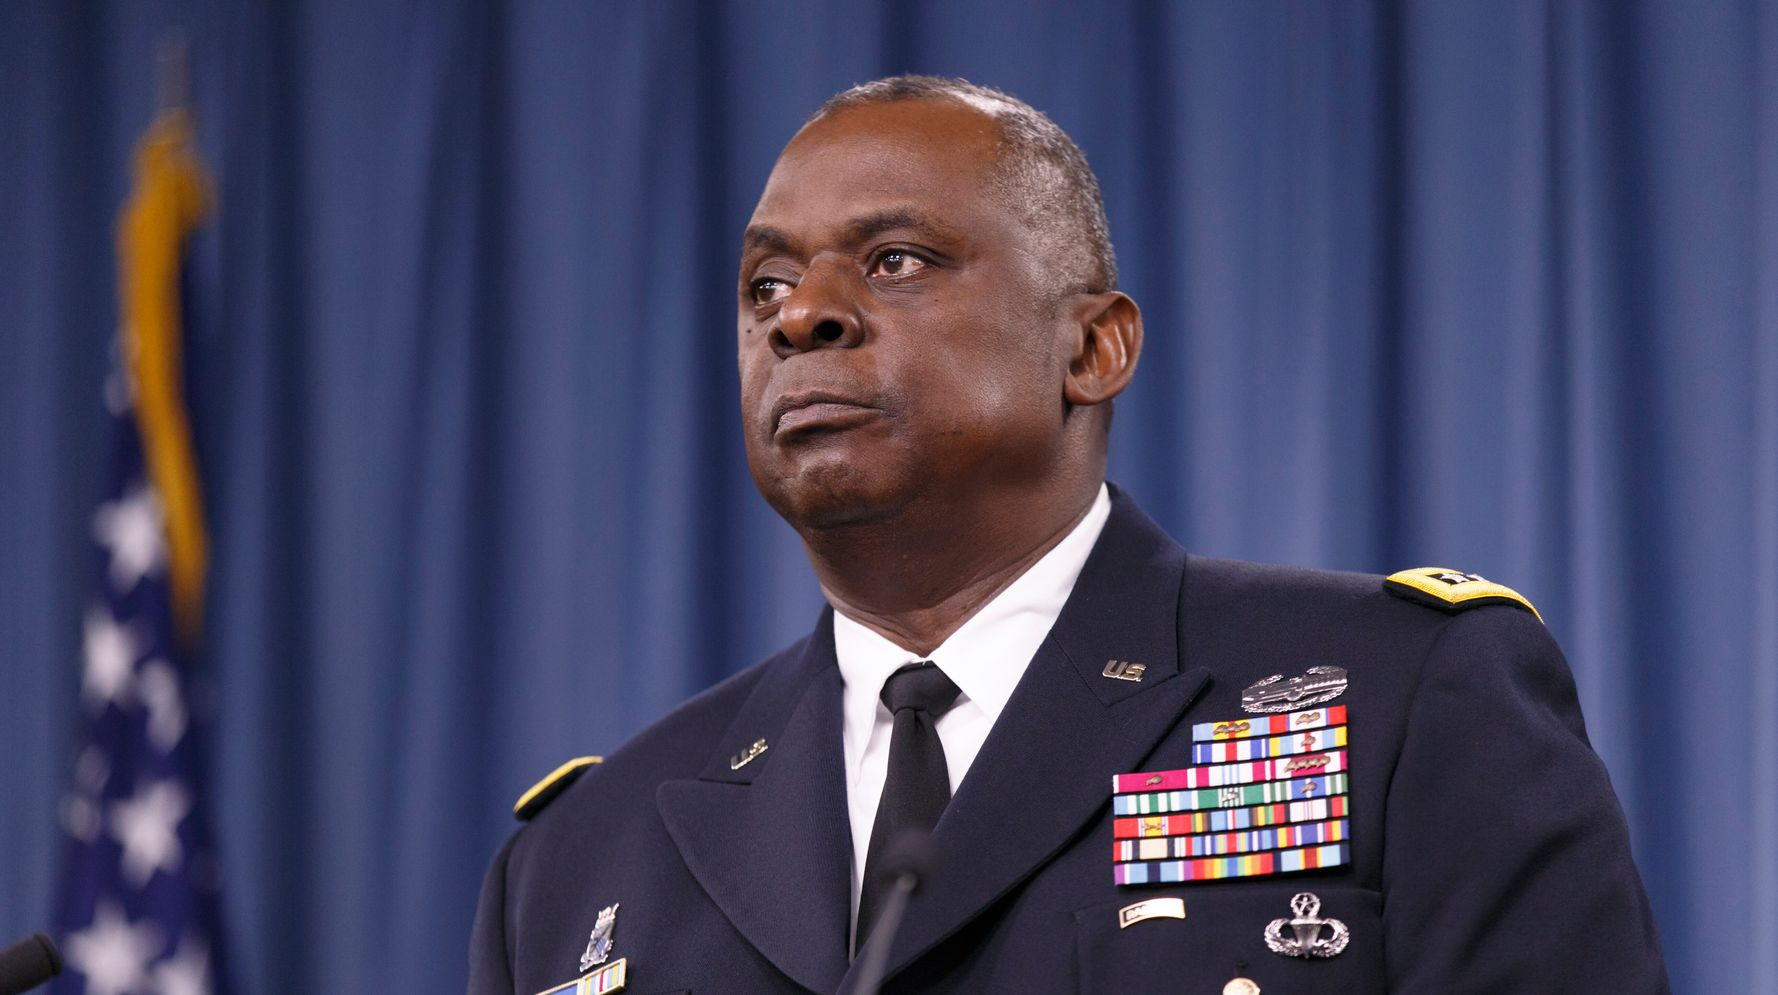 Joe Biden To Choose Retired General Lloyd Austin For Defense Secretary: Reports